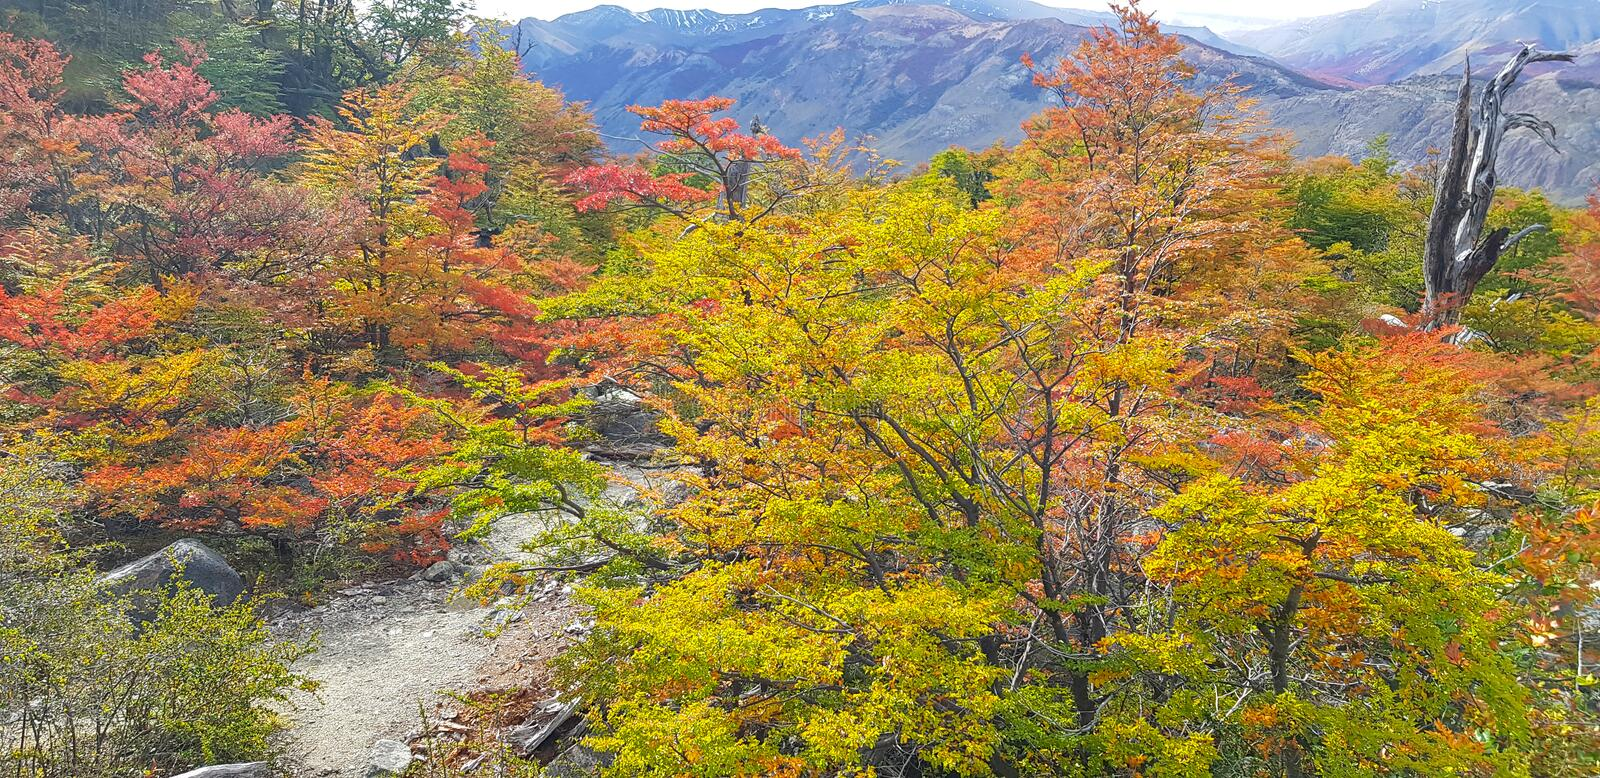 Typical landscape of Patagonia, colors of autumn leaves royalty free stock image